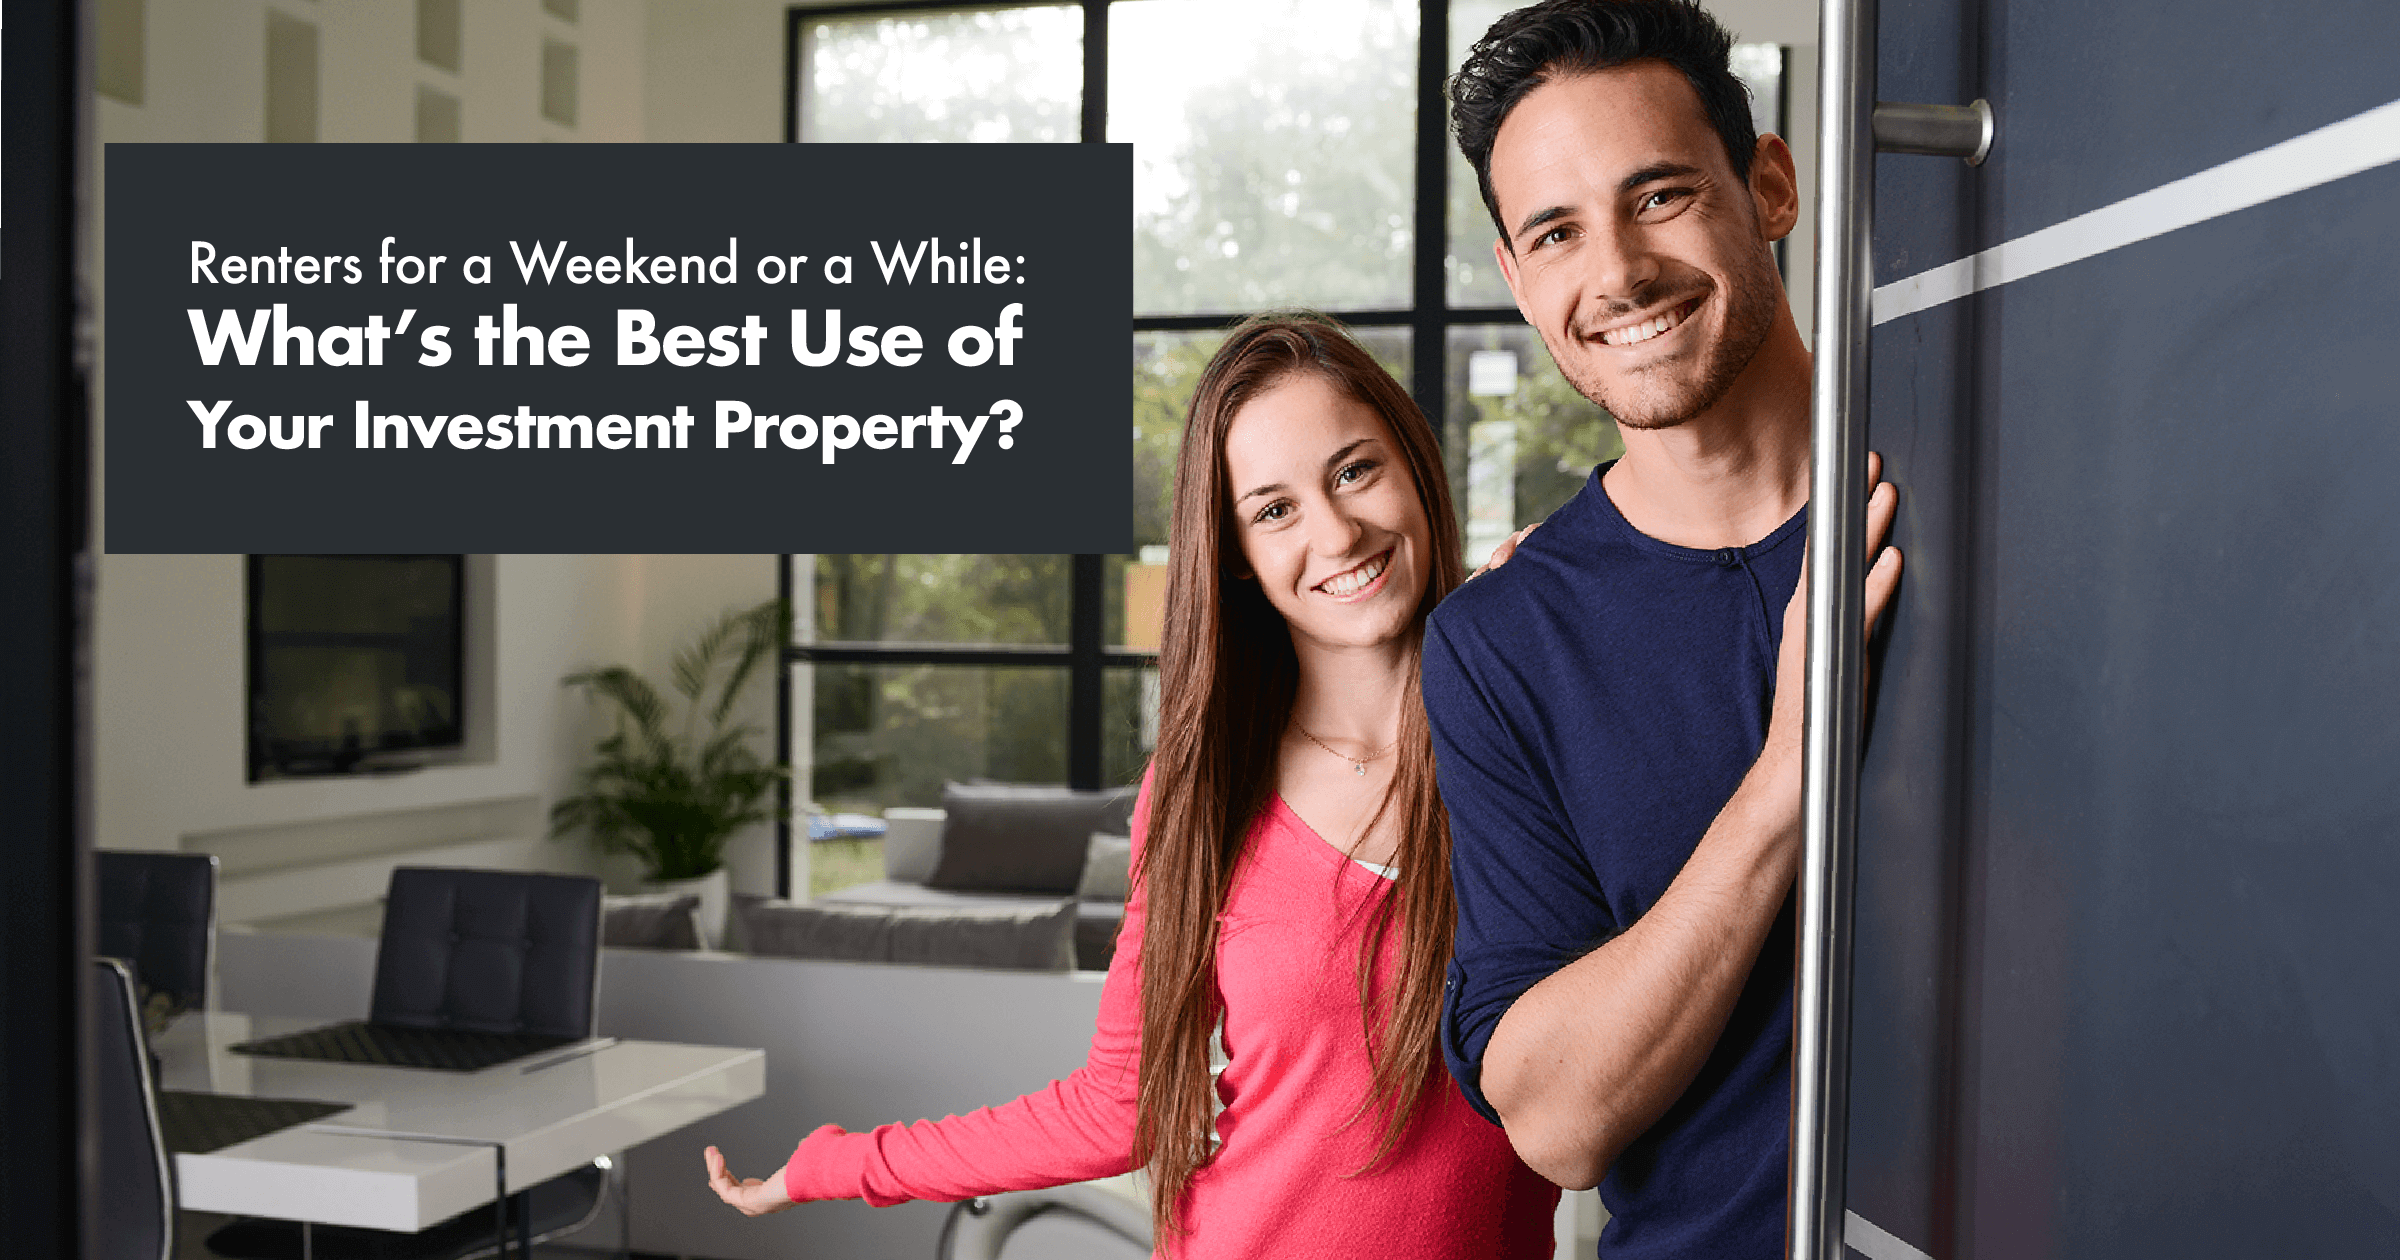 Renters for a Weekend or a While: What's the Best Use of Your Investment Property?